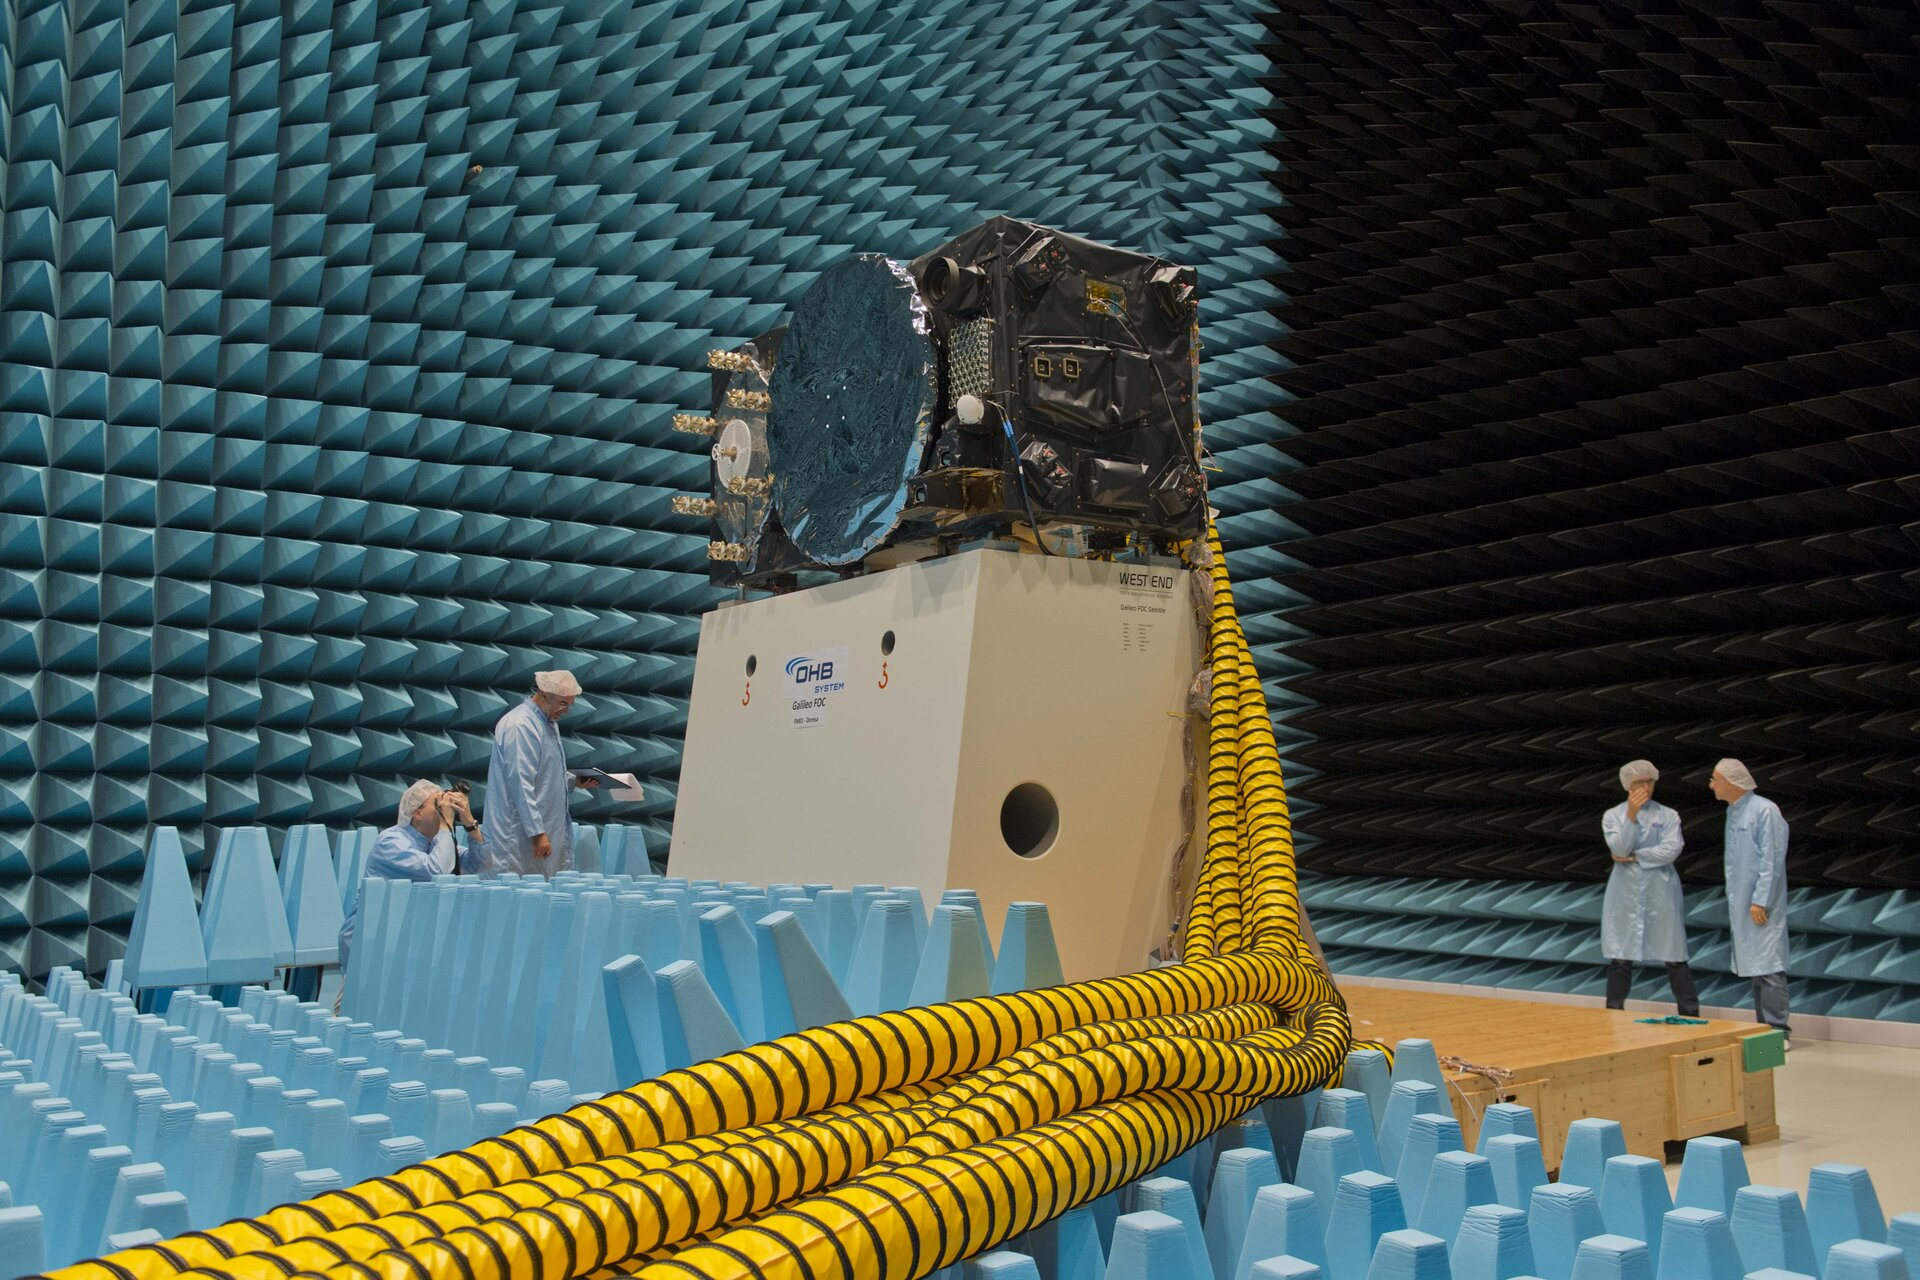 FM1 electromagnetic compatibility testing